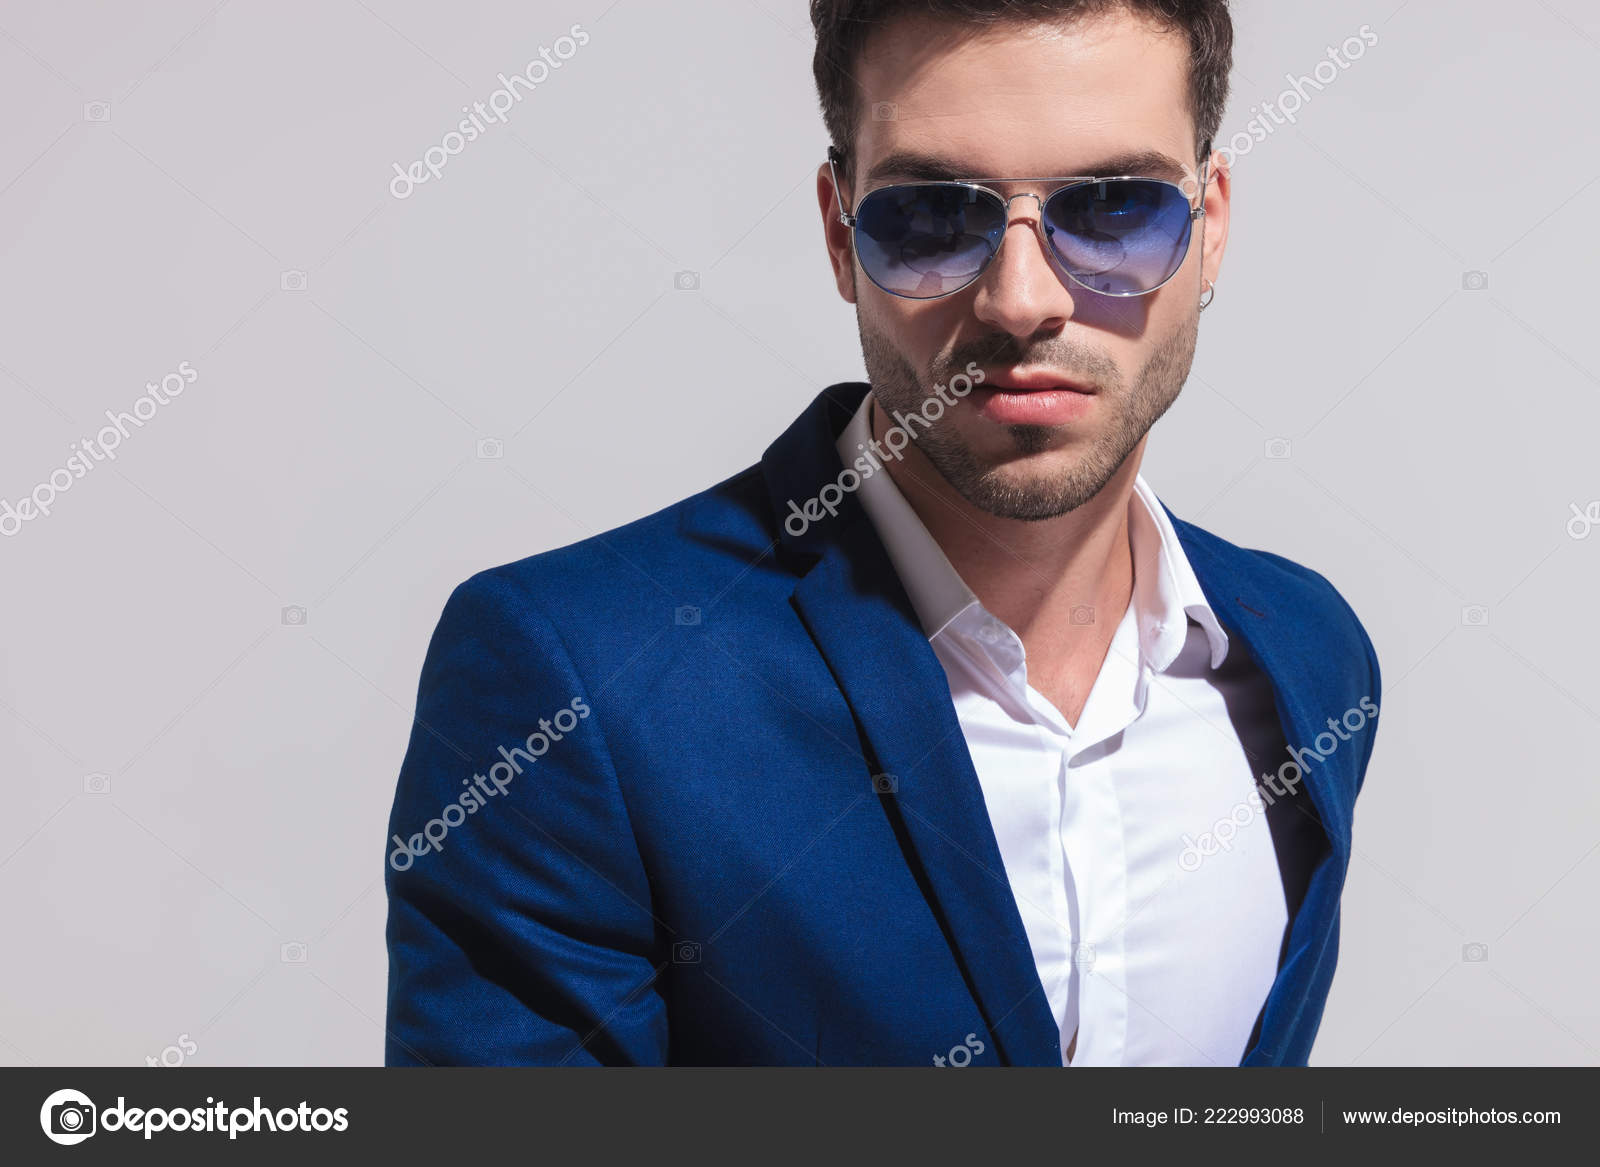 66a0677335de Closeup portrait of a sexy young elegant man in blue suit and sunglasses  looking at tne camera on grey background– stock image